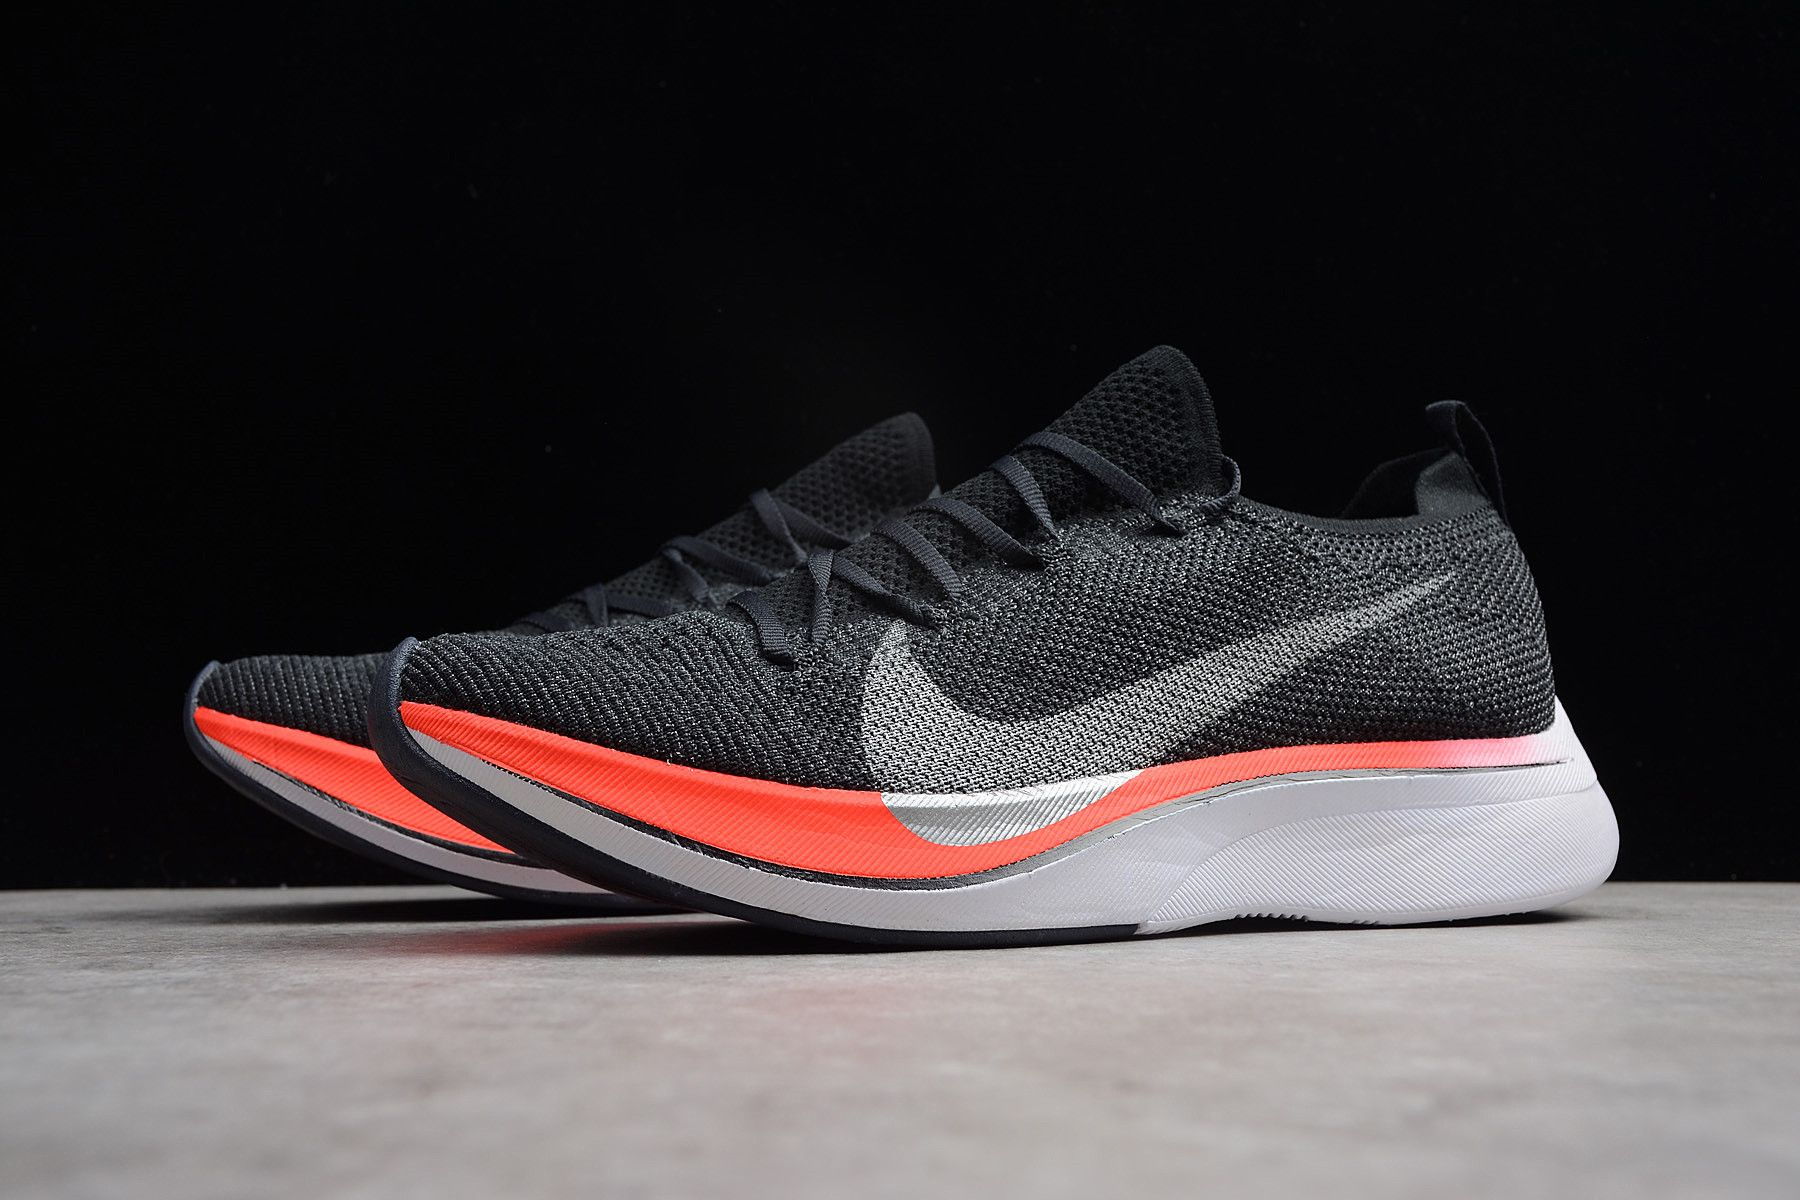 261b69dbc0ee Nike Vaporfly 4% Flyknit Blue Fox Black-Bright Crimson AJ3857-400 ...